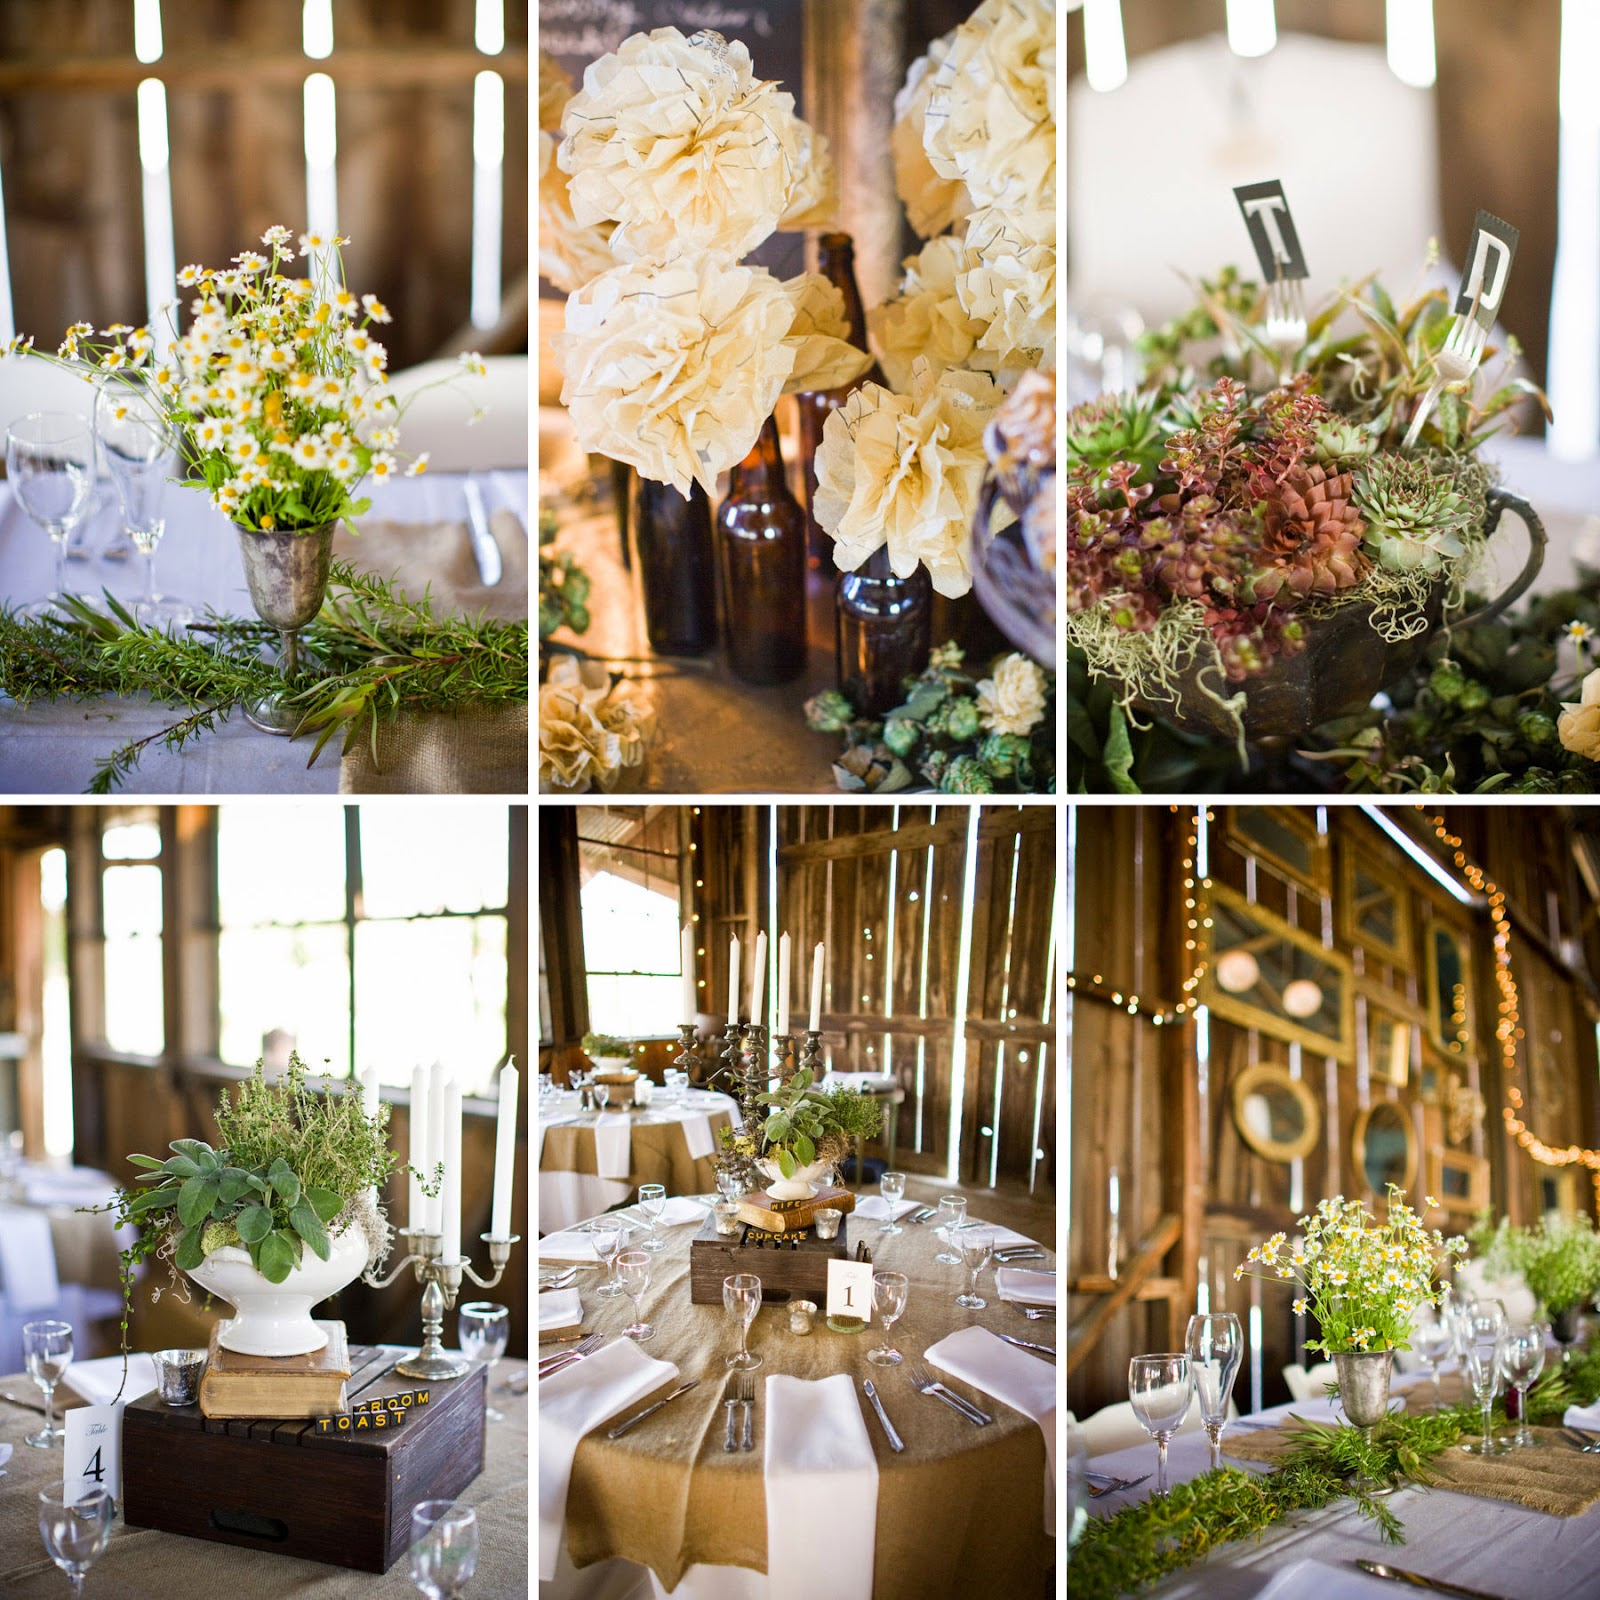 7 Barn Wedding Decoration Ideas For A Spring Wedding: Bling Brides: Country Weddings, Yee Haw! Country Centerpieces